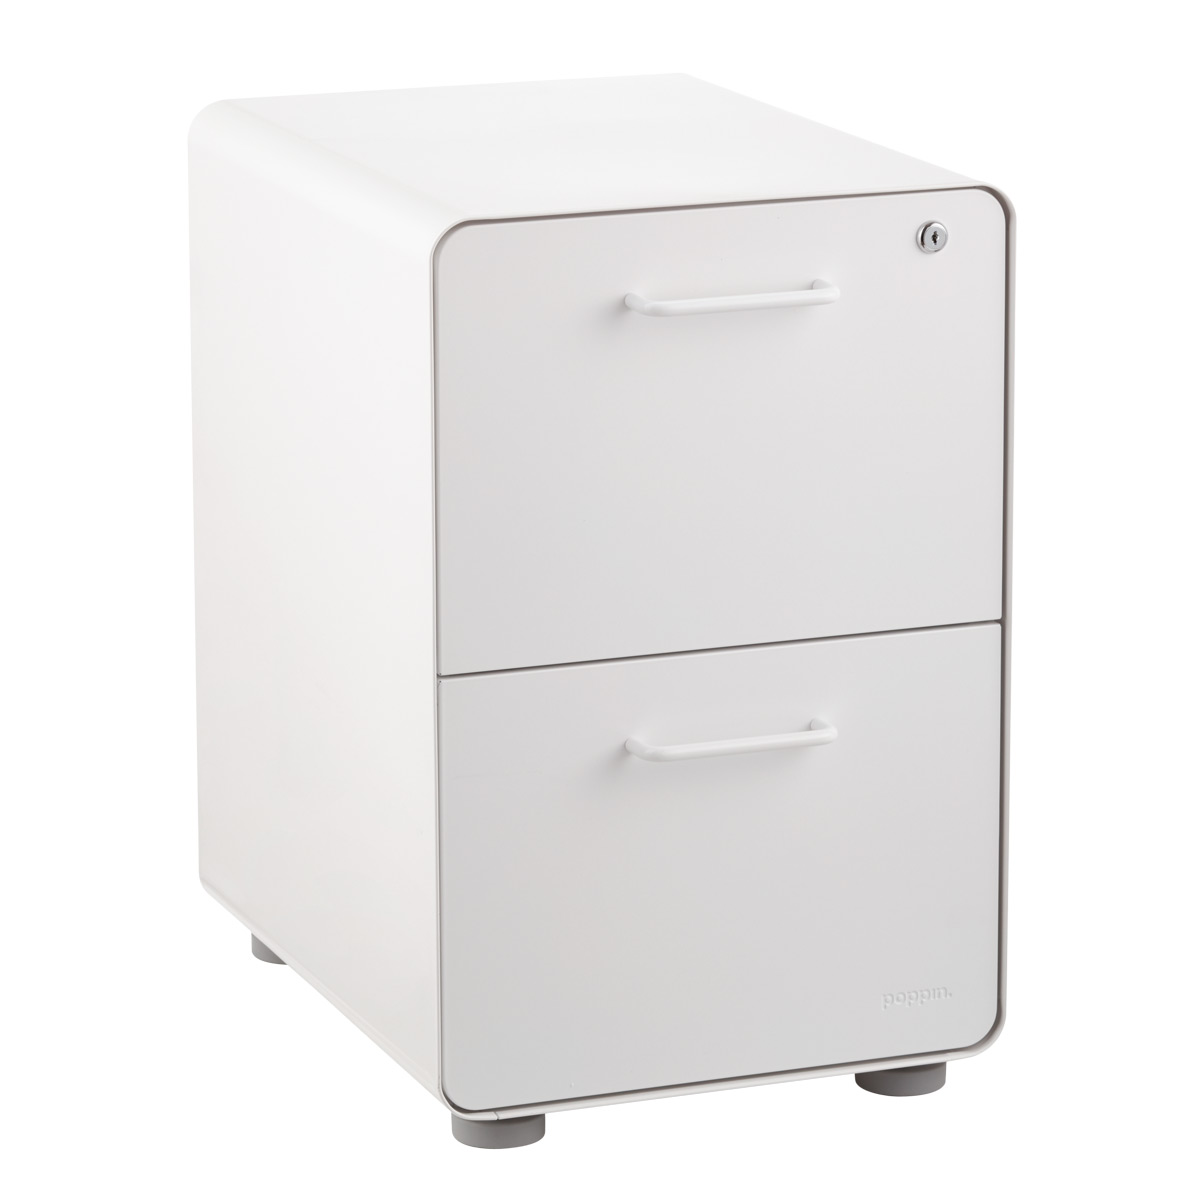 Poppin White 2-Drawer Locking Stow Filing Cabinet  sc 1 st  The Container Store & Poppin White 2-Drawer Locking Stow Filing Cabinet | The Container Store